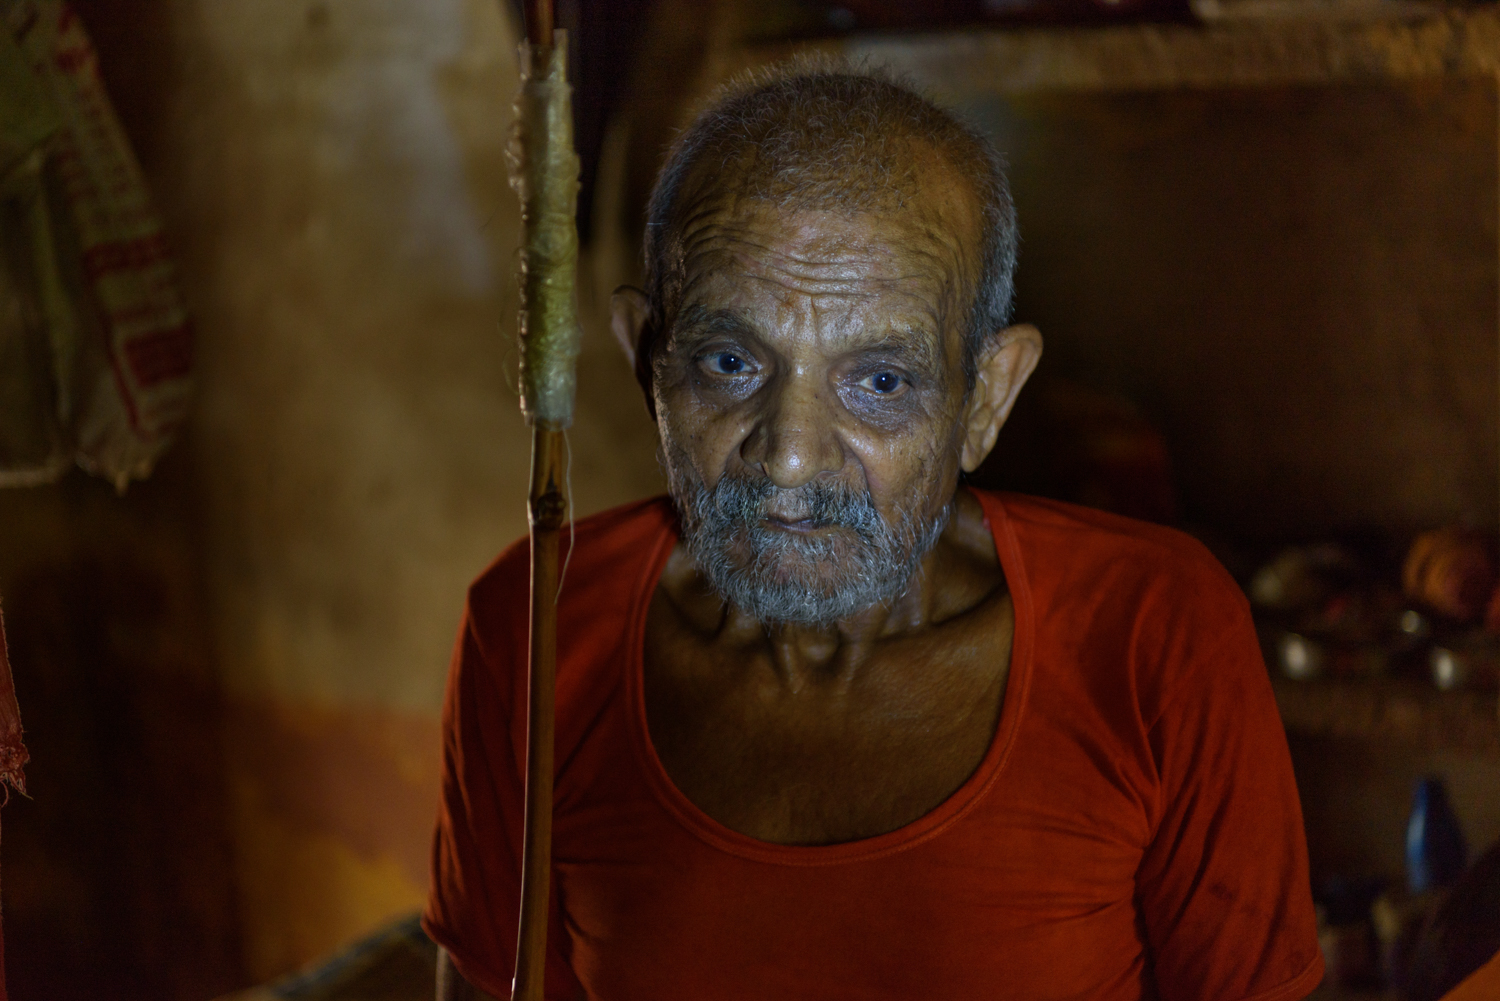 Rajnarayan Ashram, 80, in his room at the Mumukshu Bhawan in Varanasi.